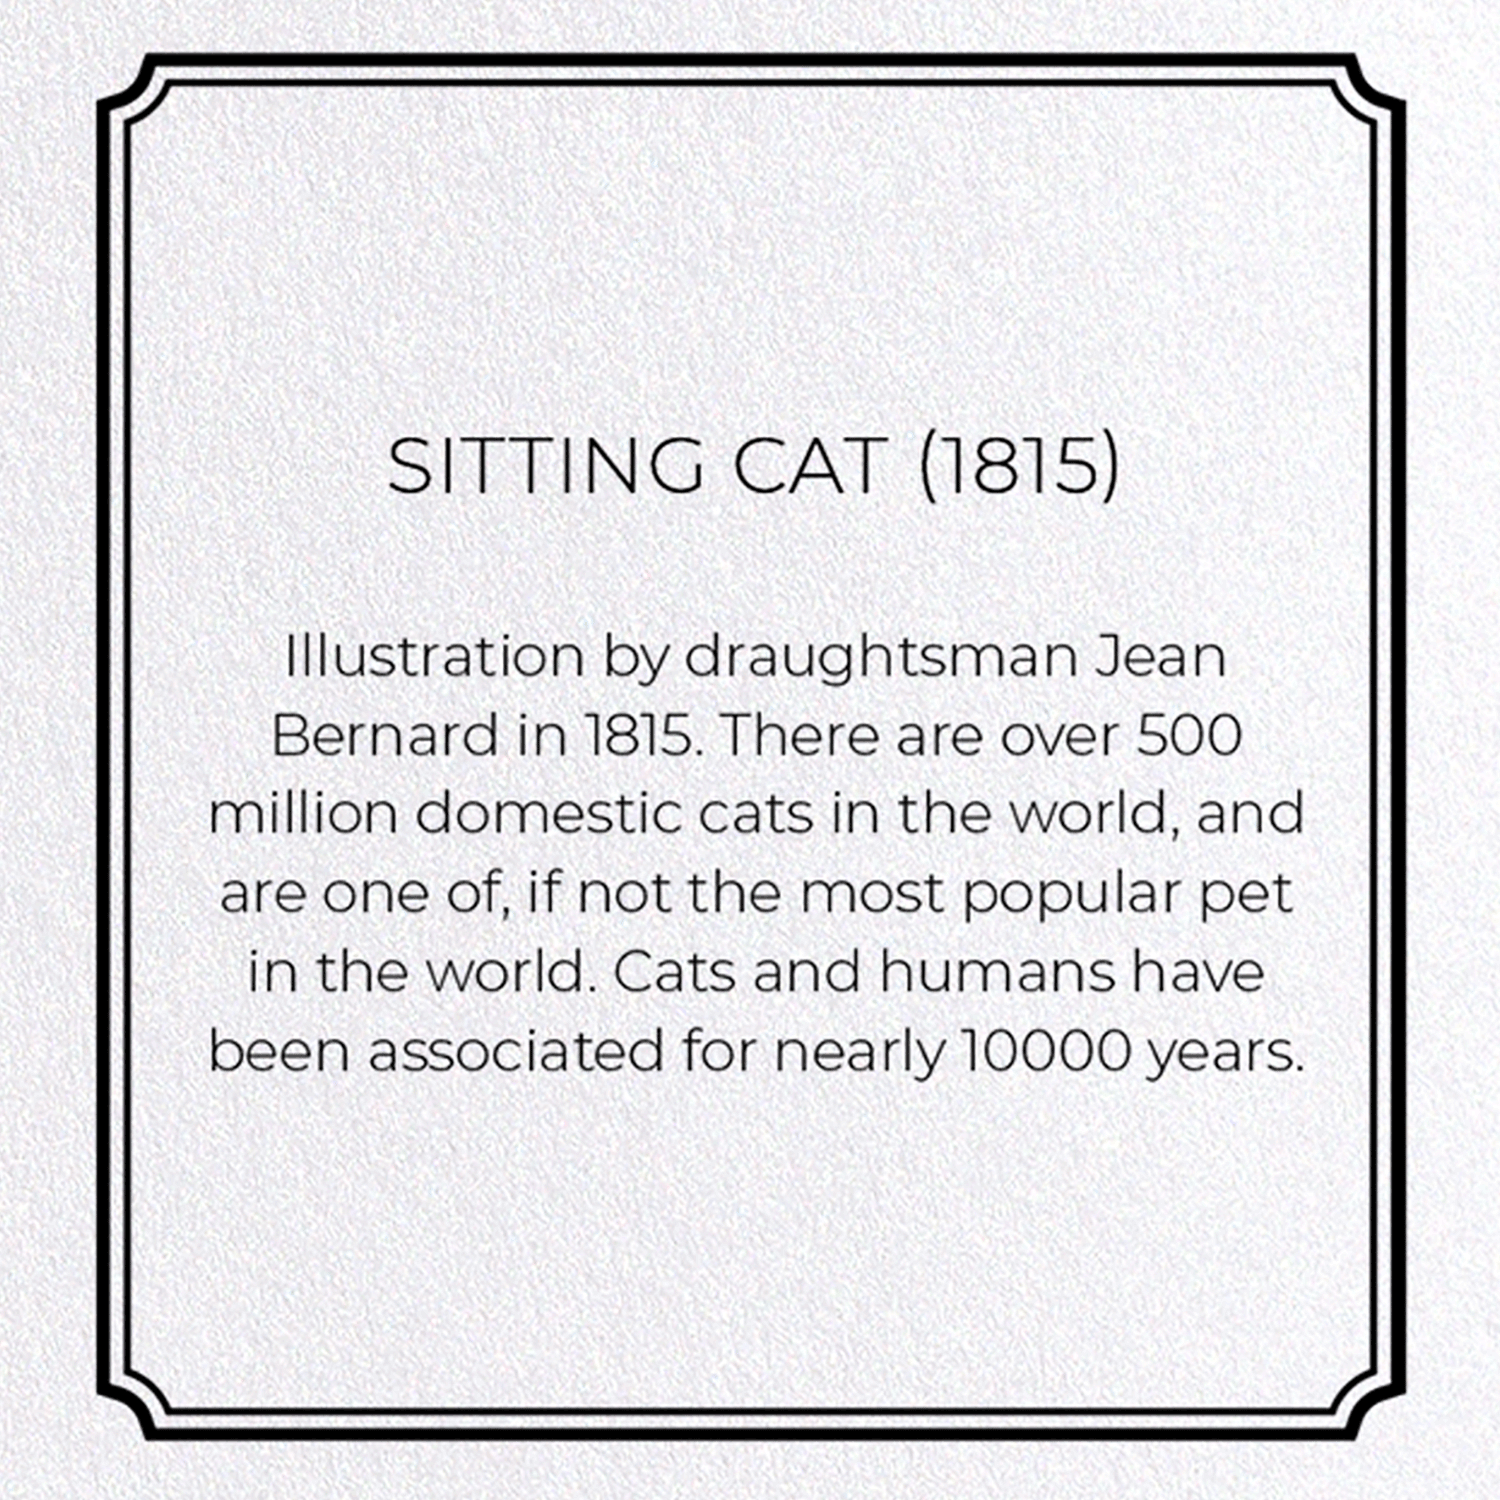 SITTING CAT (1815): 8xCards